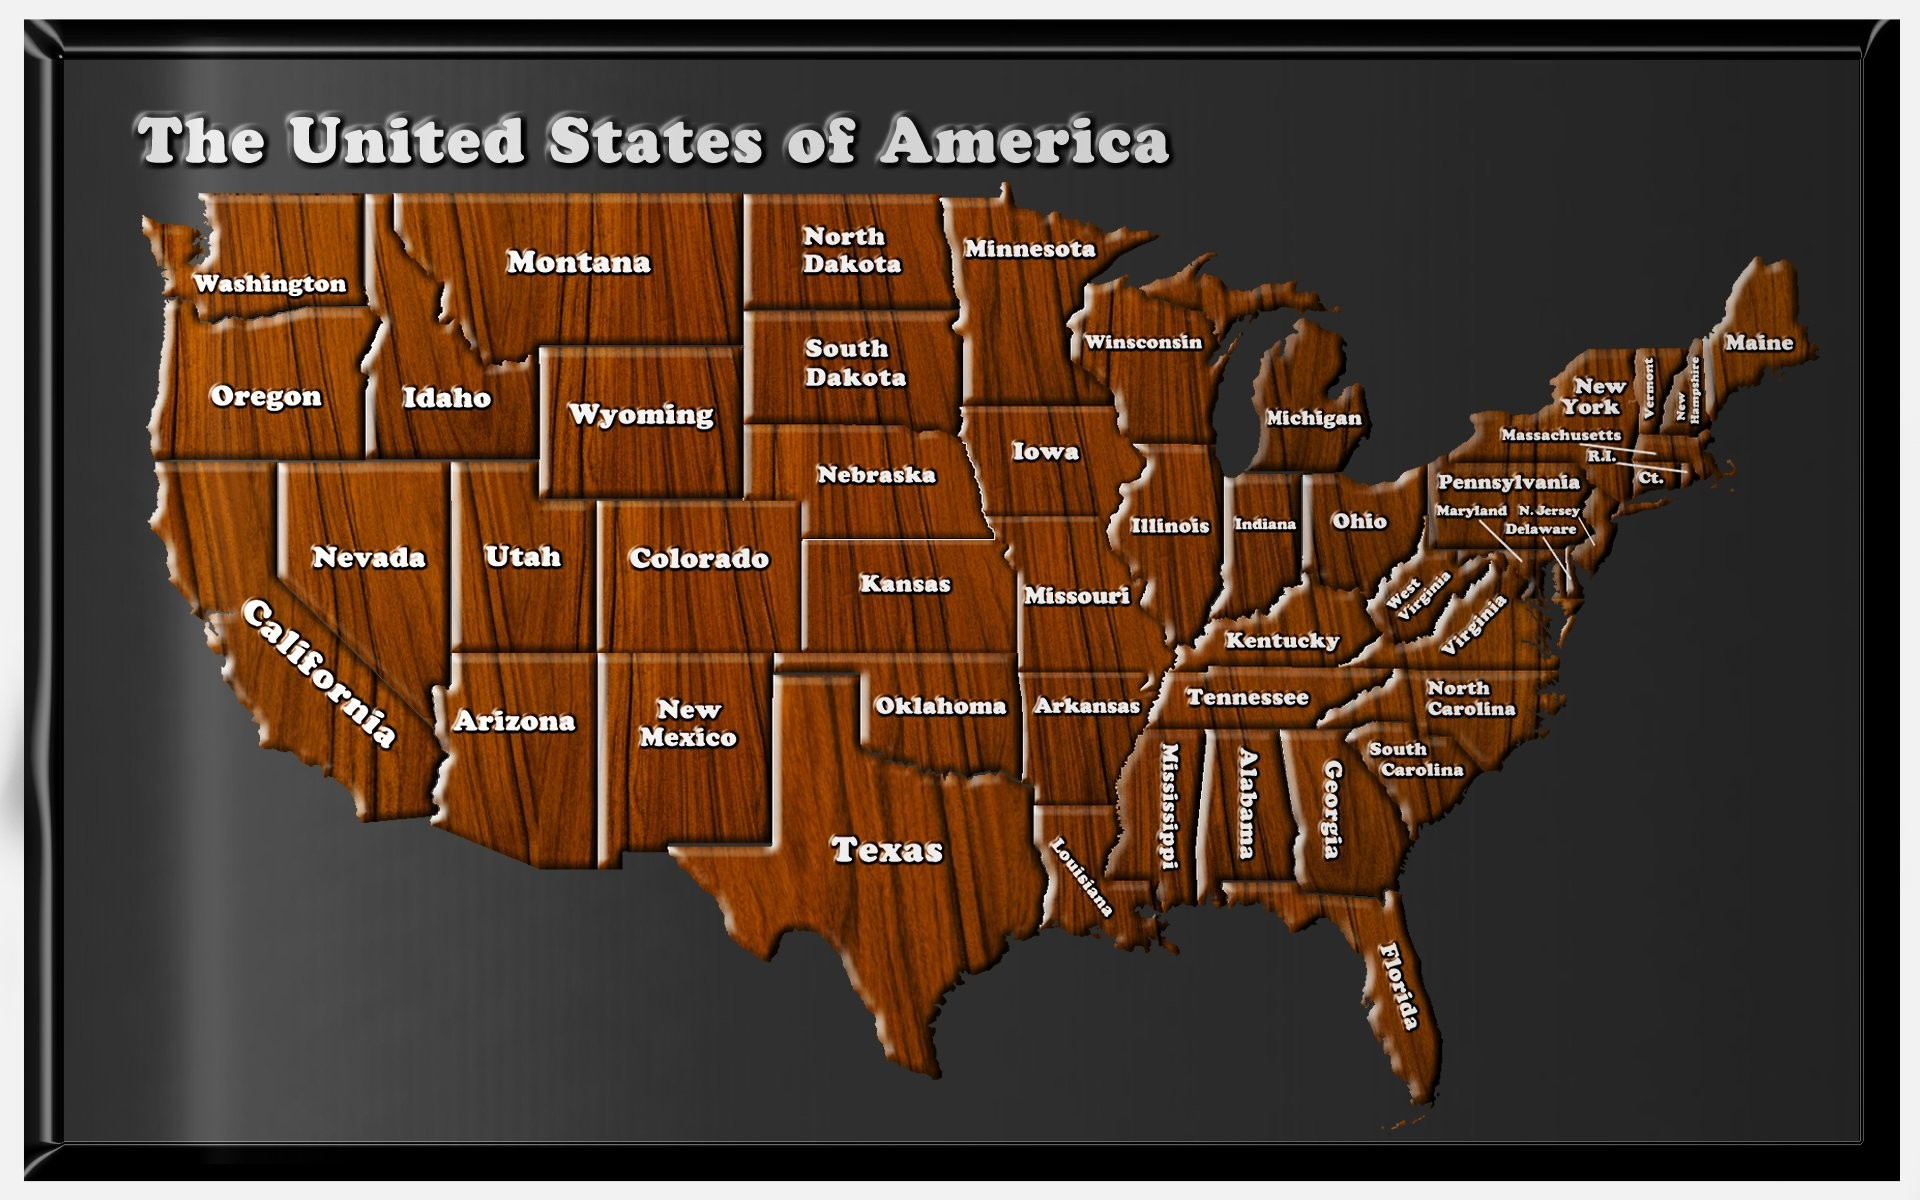 1920x1200 wood grain us usa america states map maps patriotic wallpaper